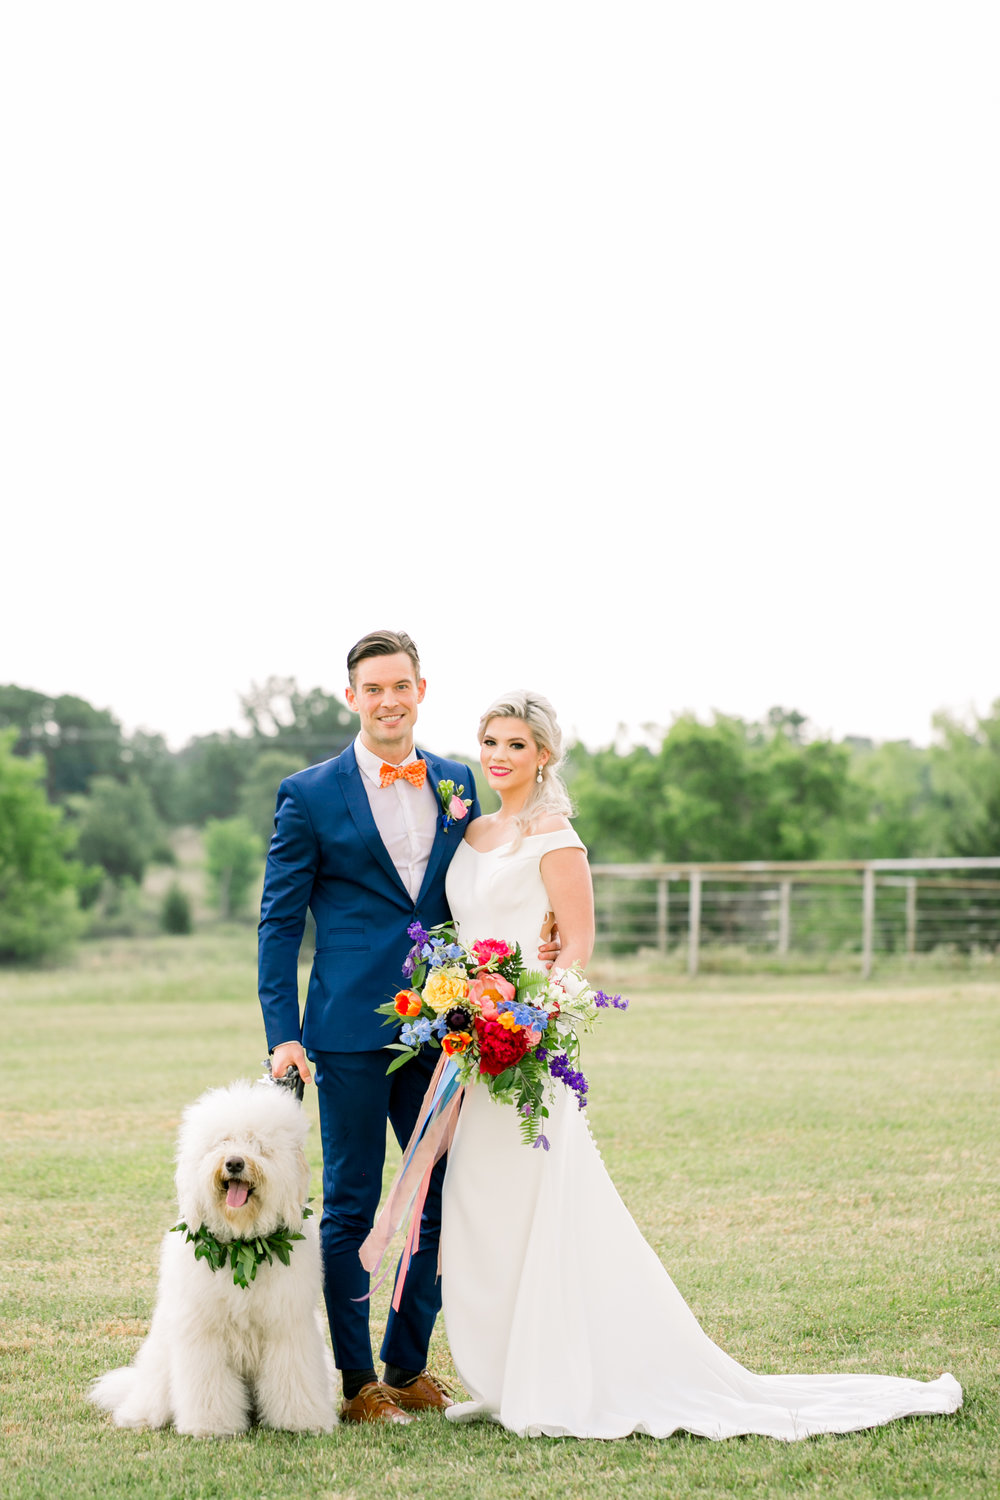 Colorful Wedding Portrait of Bride and Groom with Flower Dog